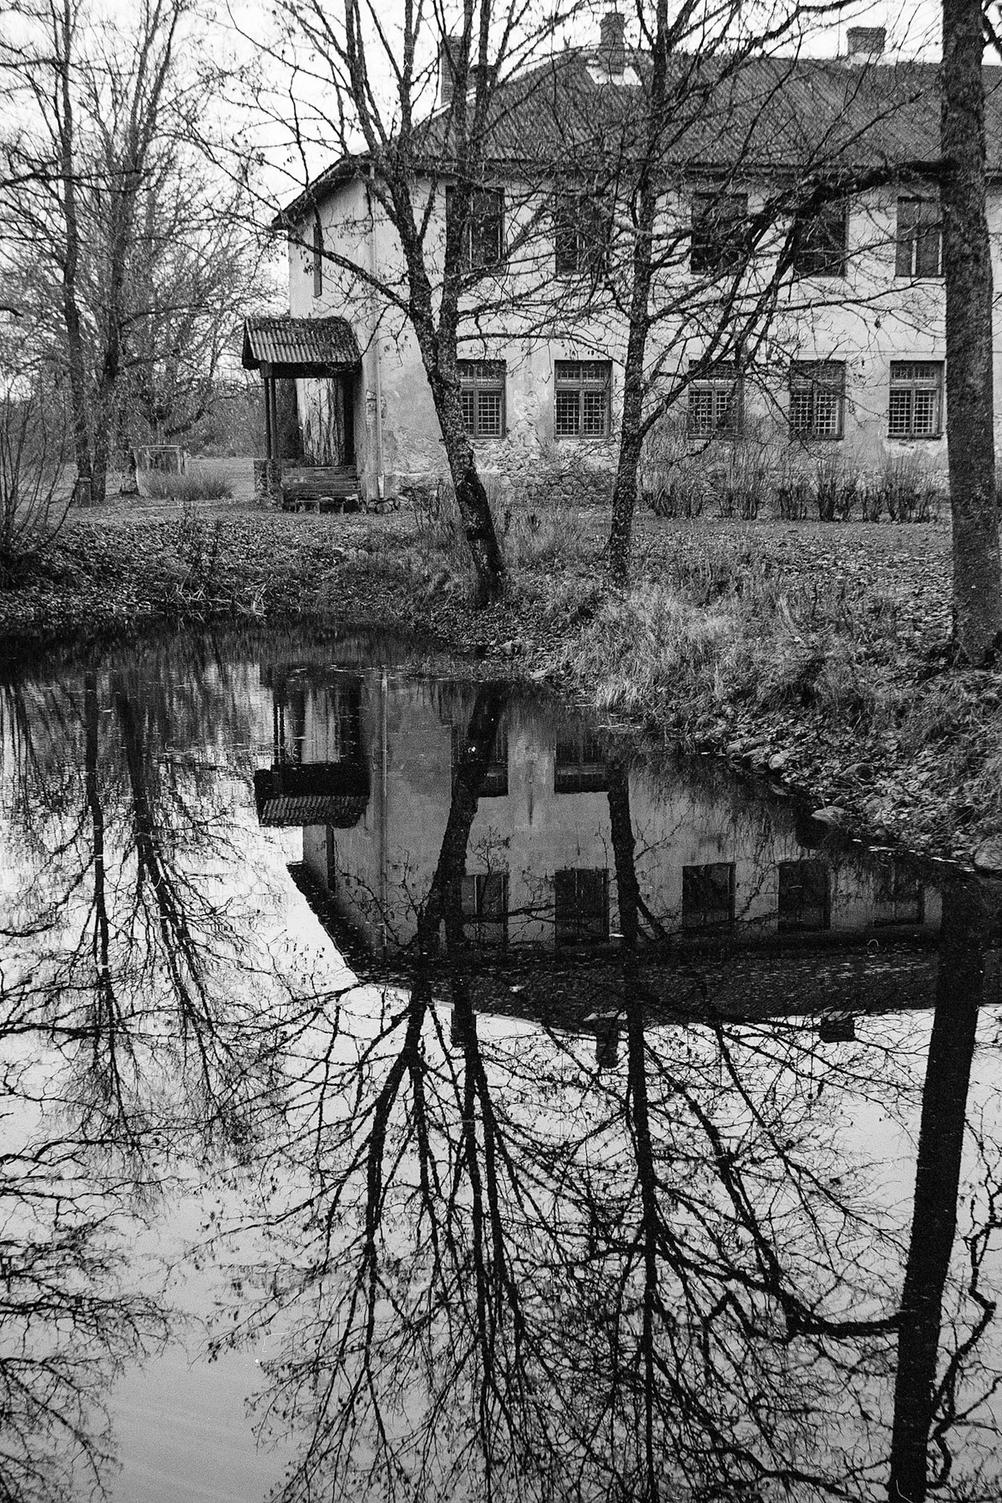 Photo of a house and a tree and their reflection in a pond.